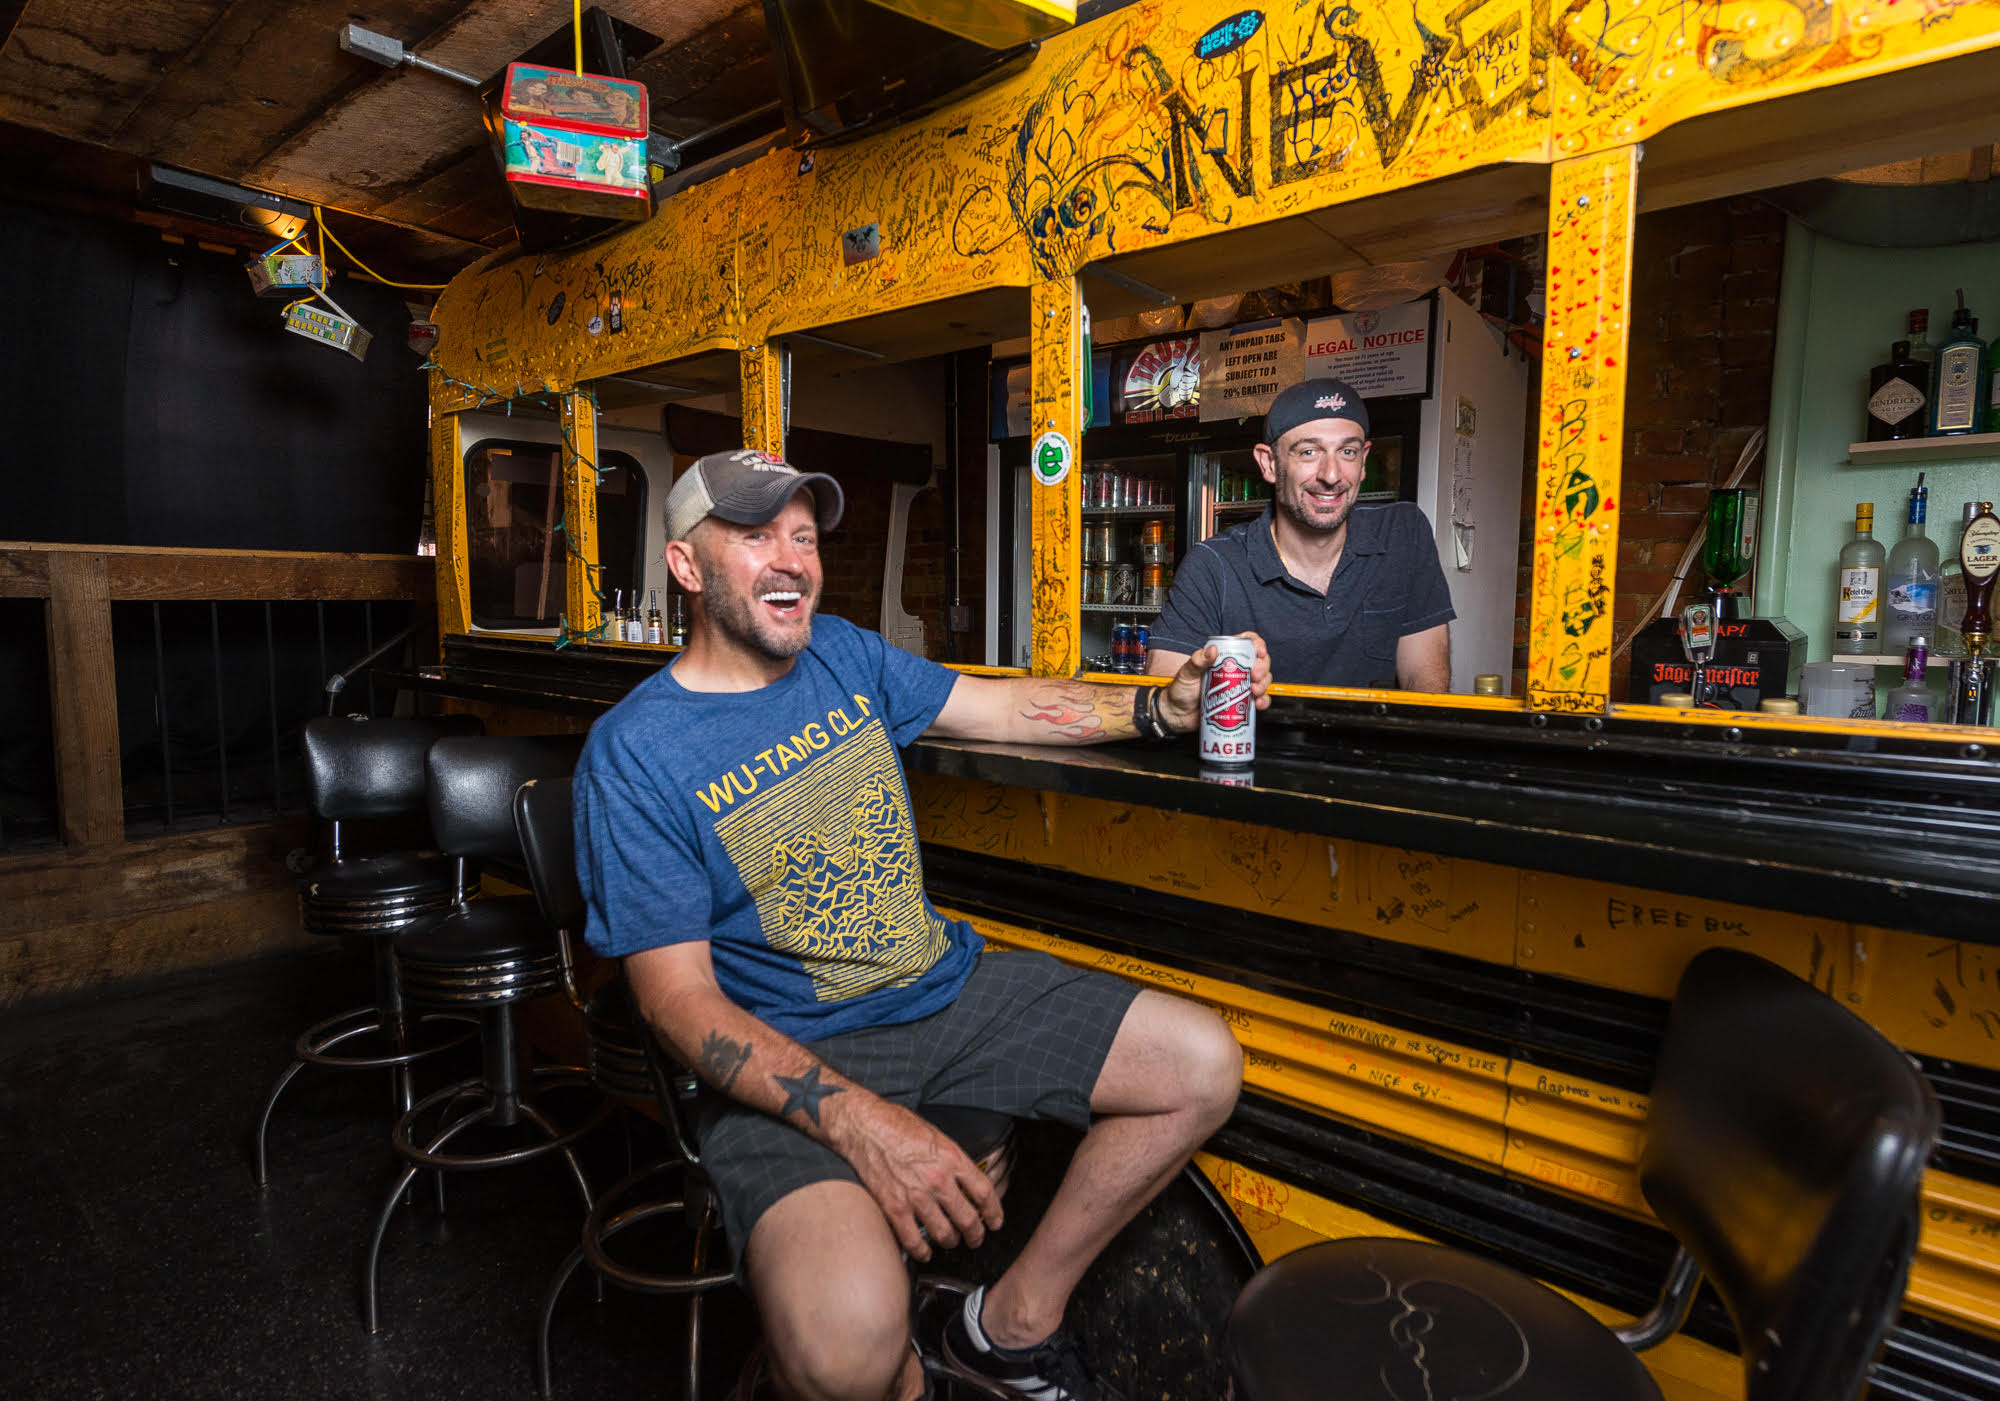 Mark Menard and Mike Schuster of Trusty's